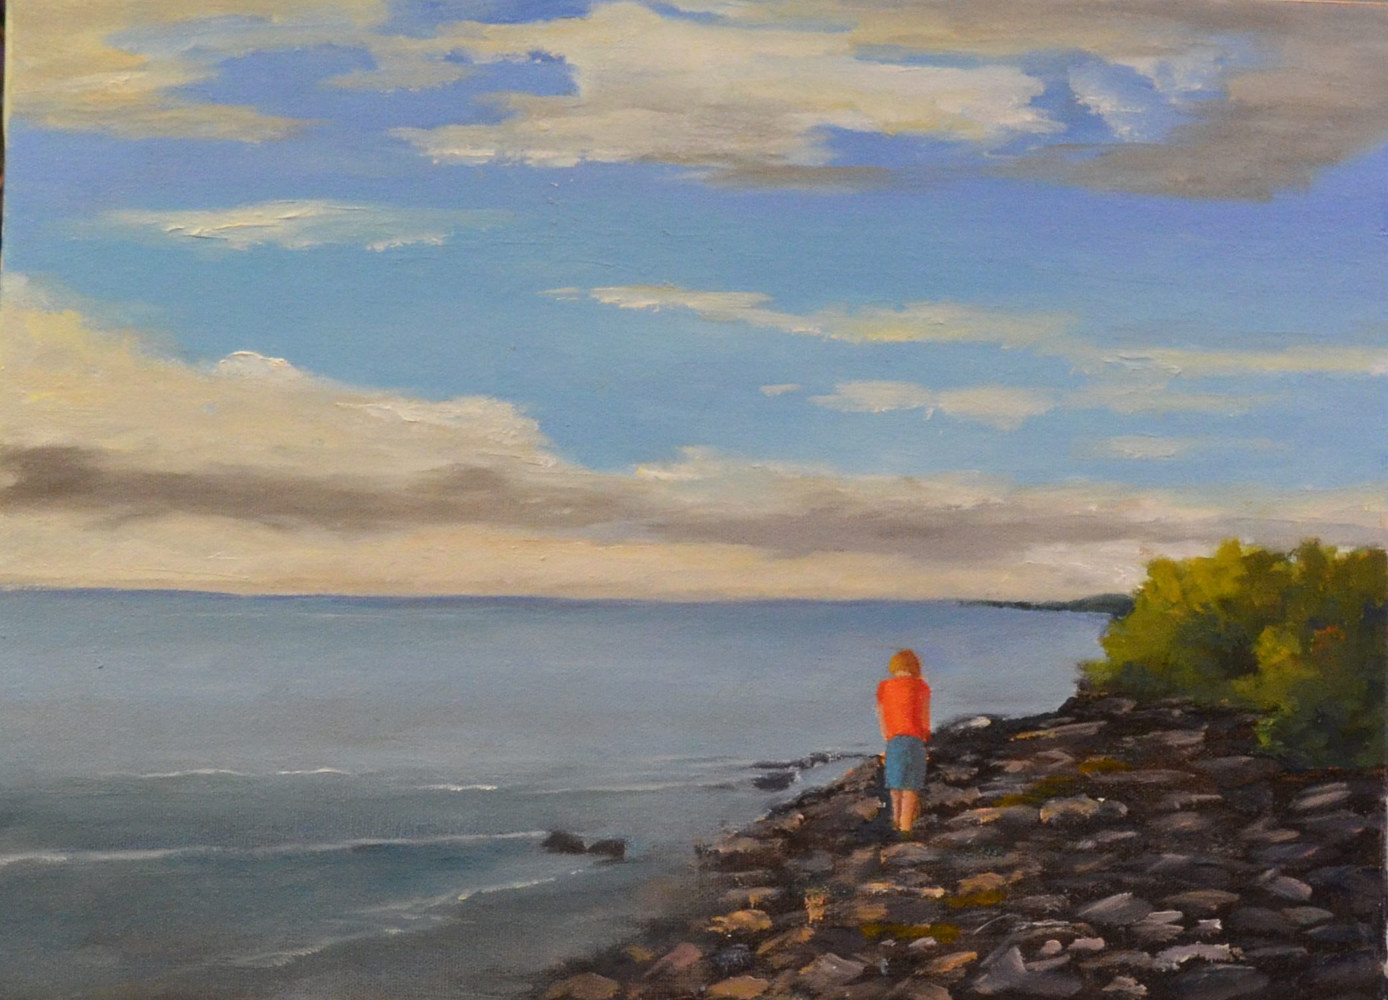 The Rock Beach - 12 x 16, oil on canvas - 15-0218 by Patricia Savoie